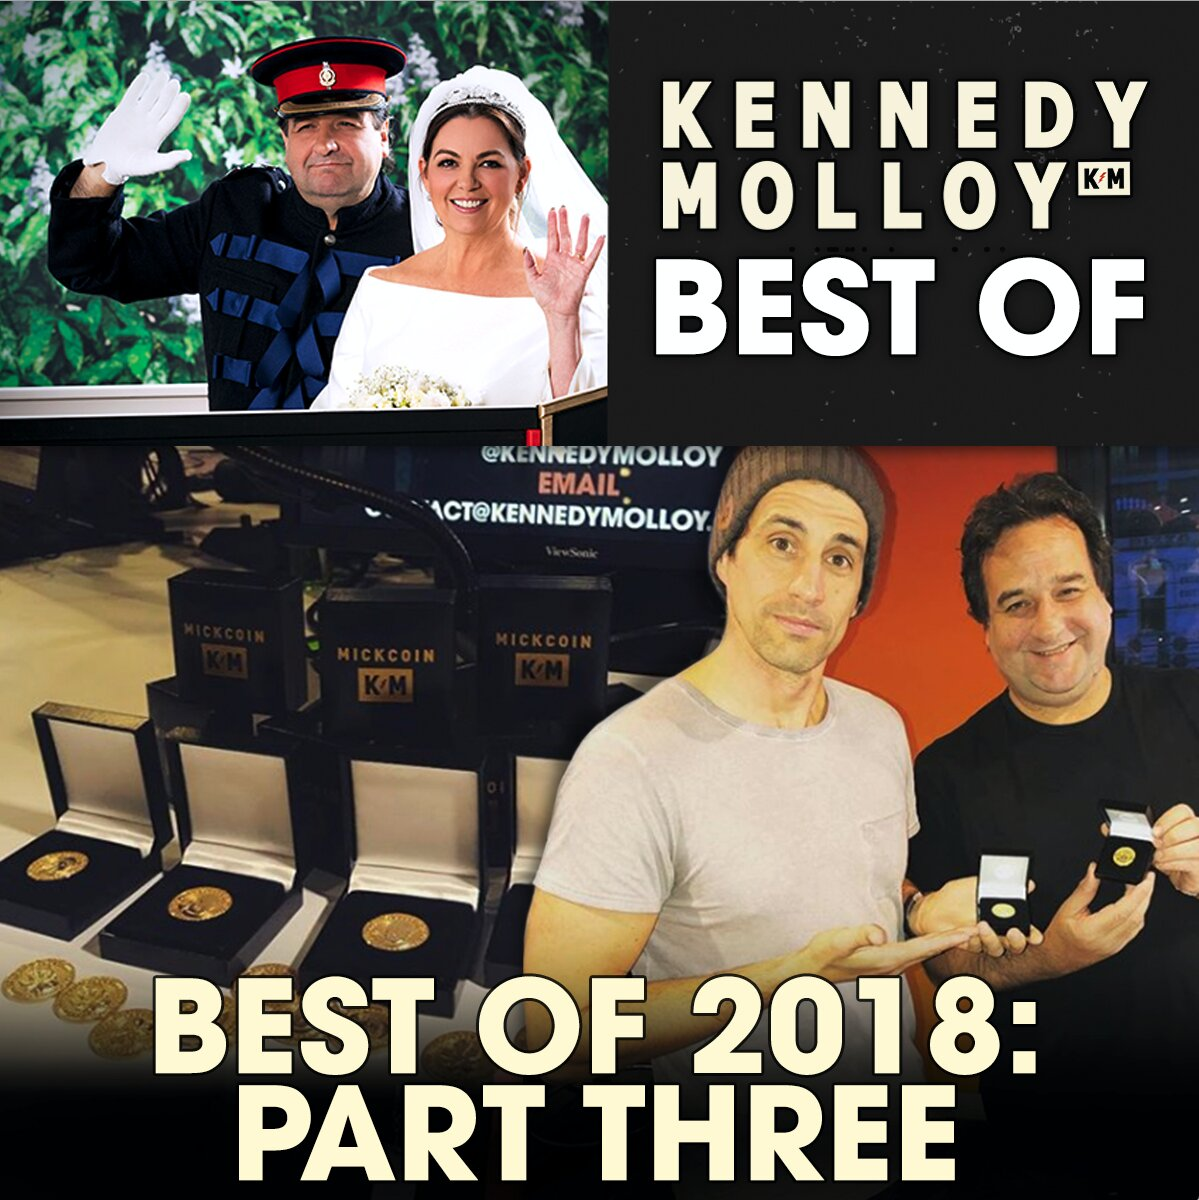 Kennedy Molloy's Best Of 2018: Part 3